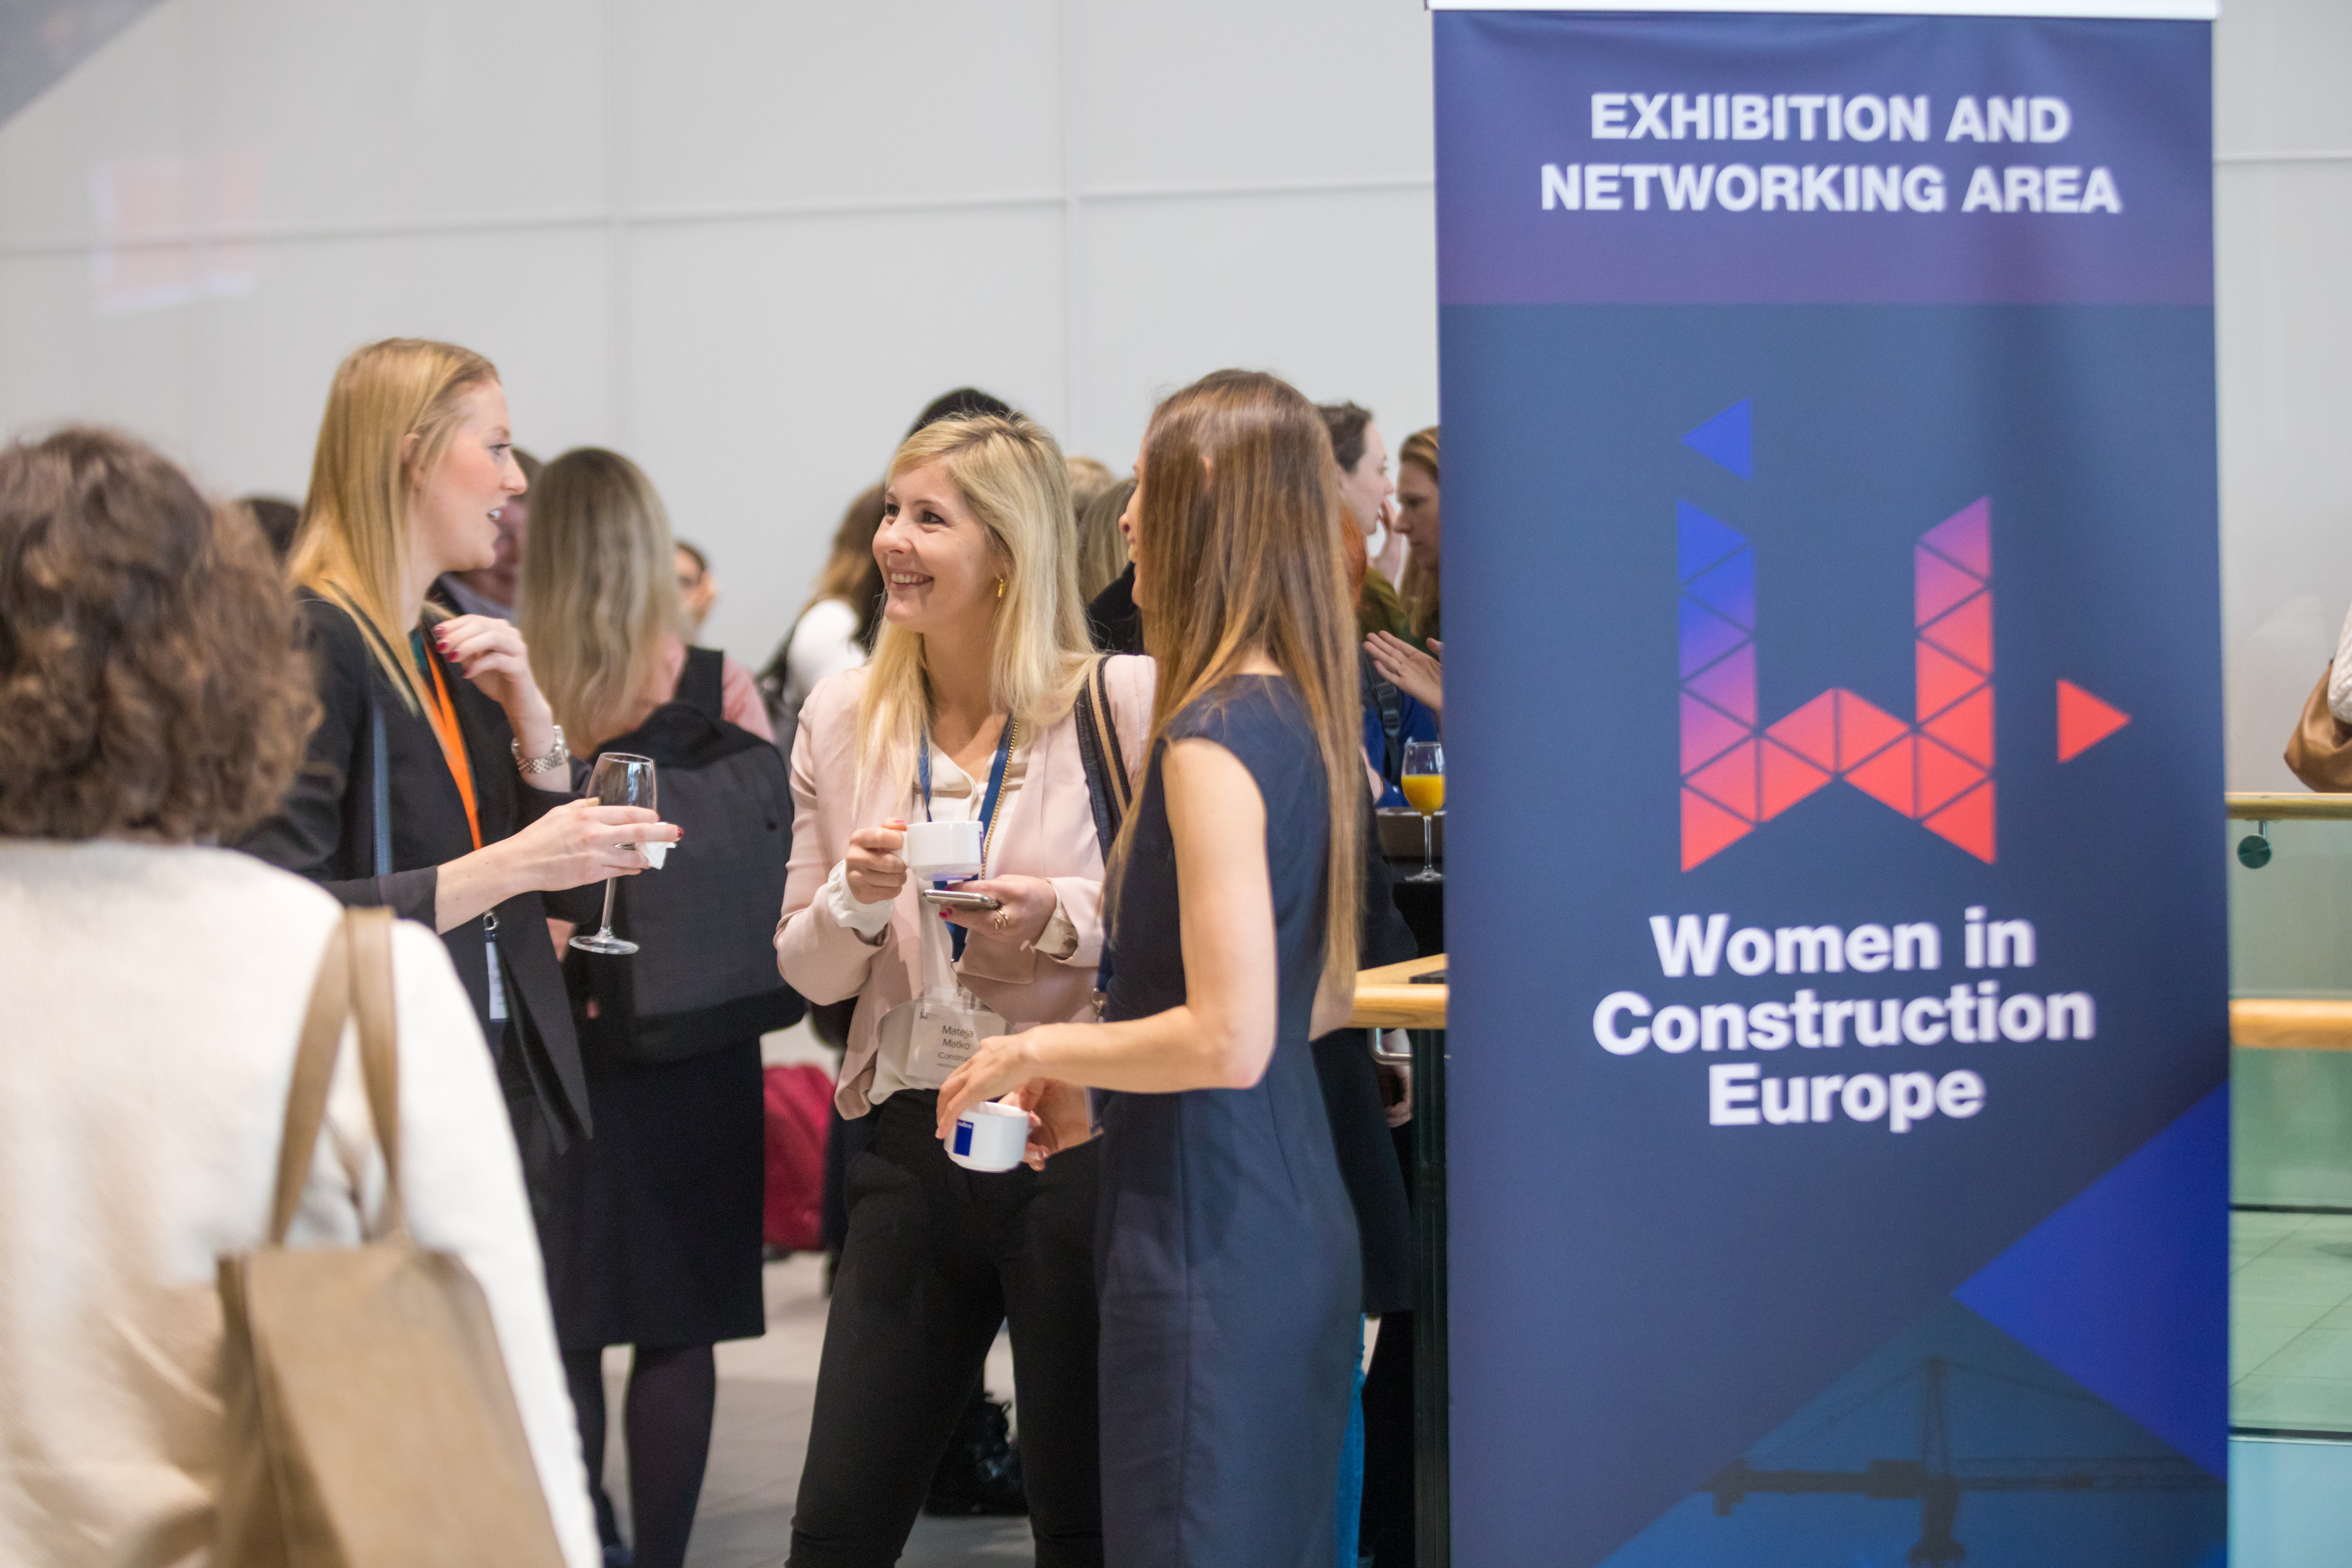 Women-in-construction-europe-networking